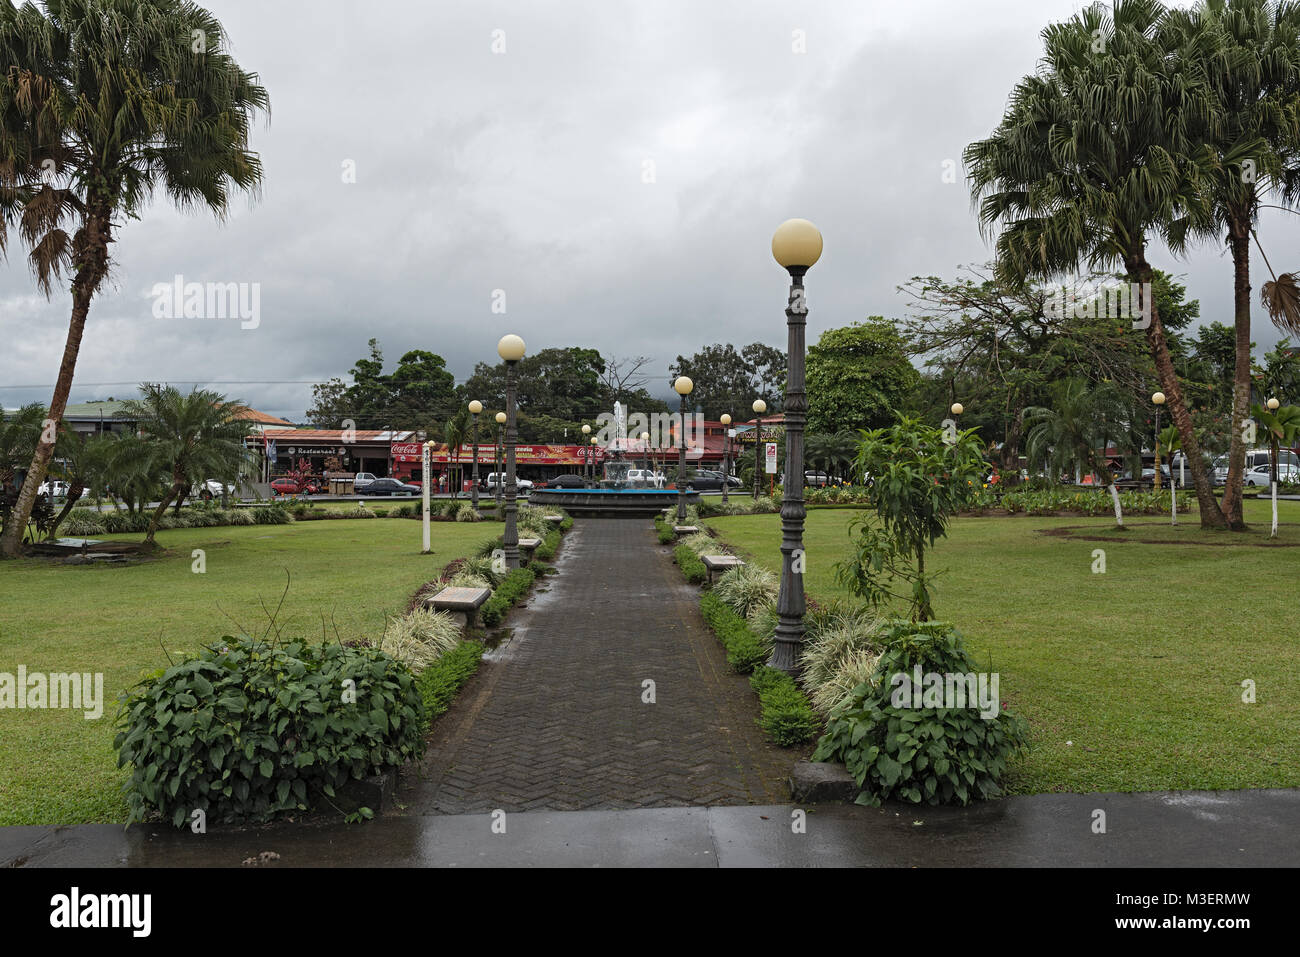 The Fortuna Park in La Fortuna in rainy weather, Costa Rica - Stock Image